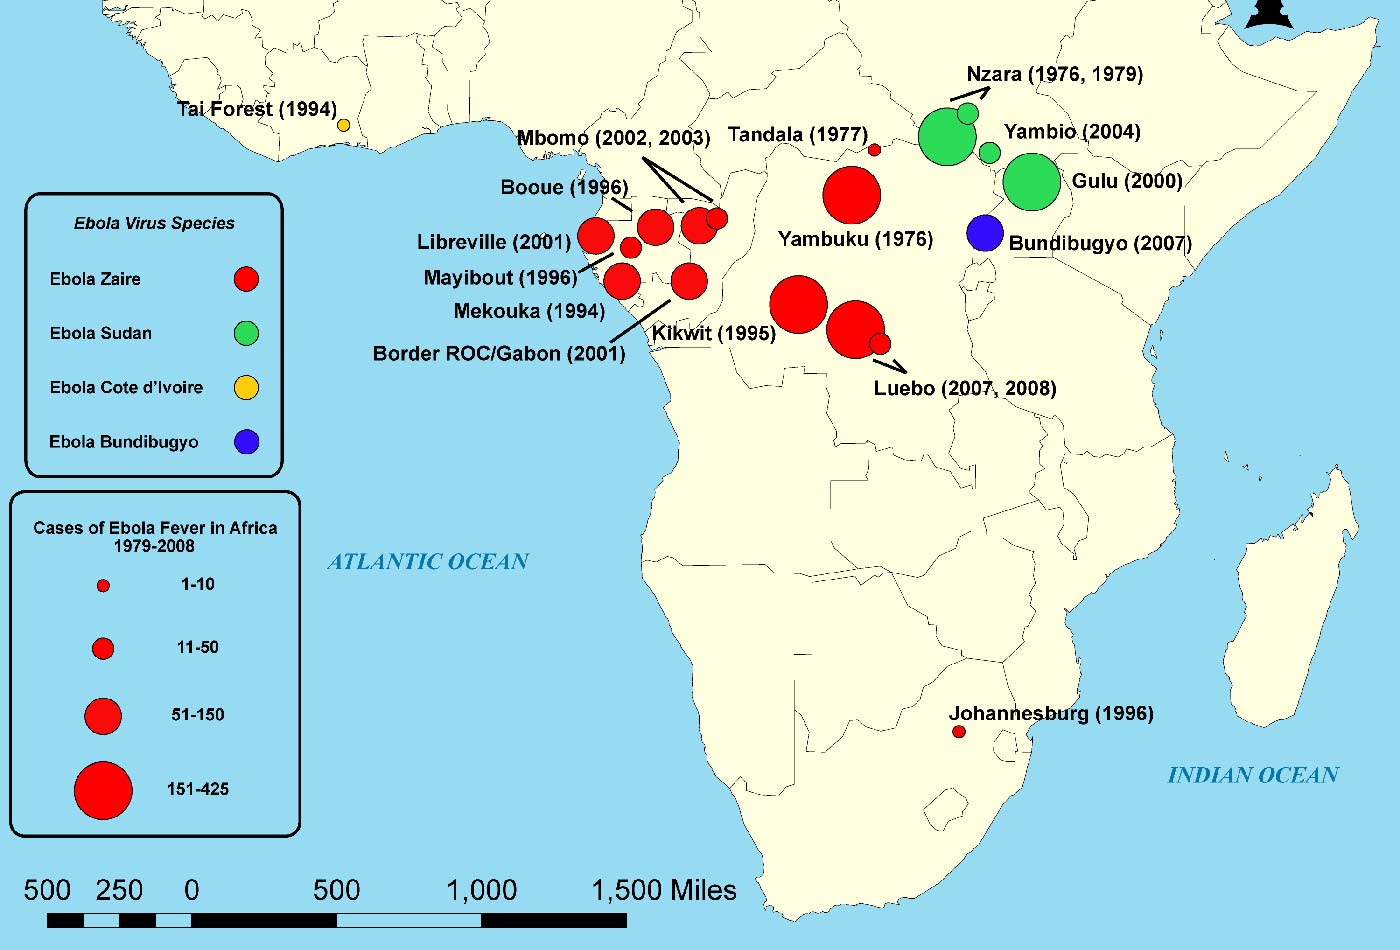 Map of outbreaks of the Ebola virus in Africa by strain and confirmed contractions.